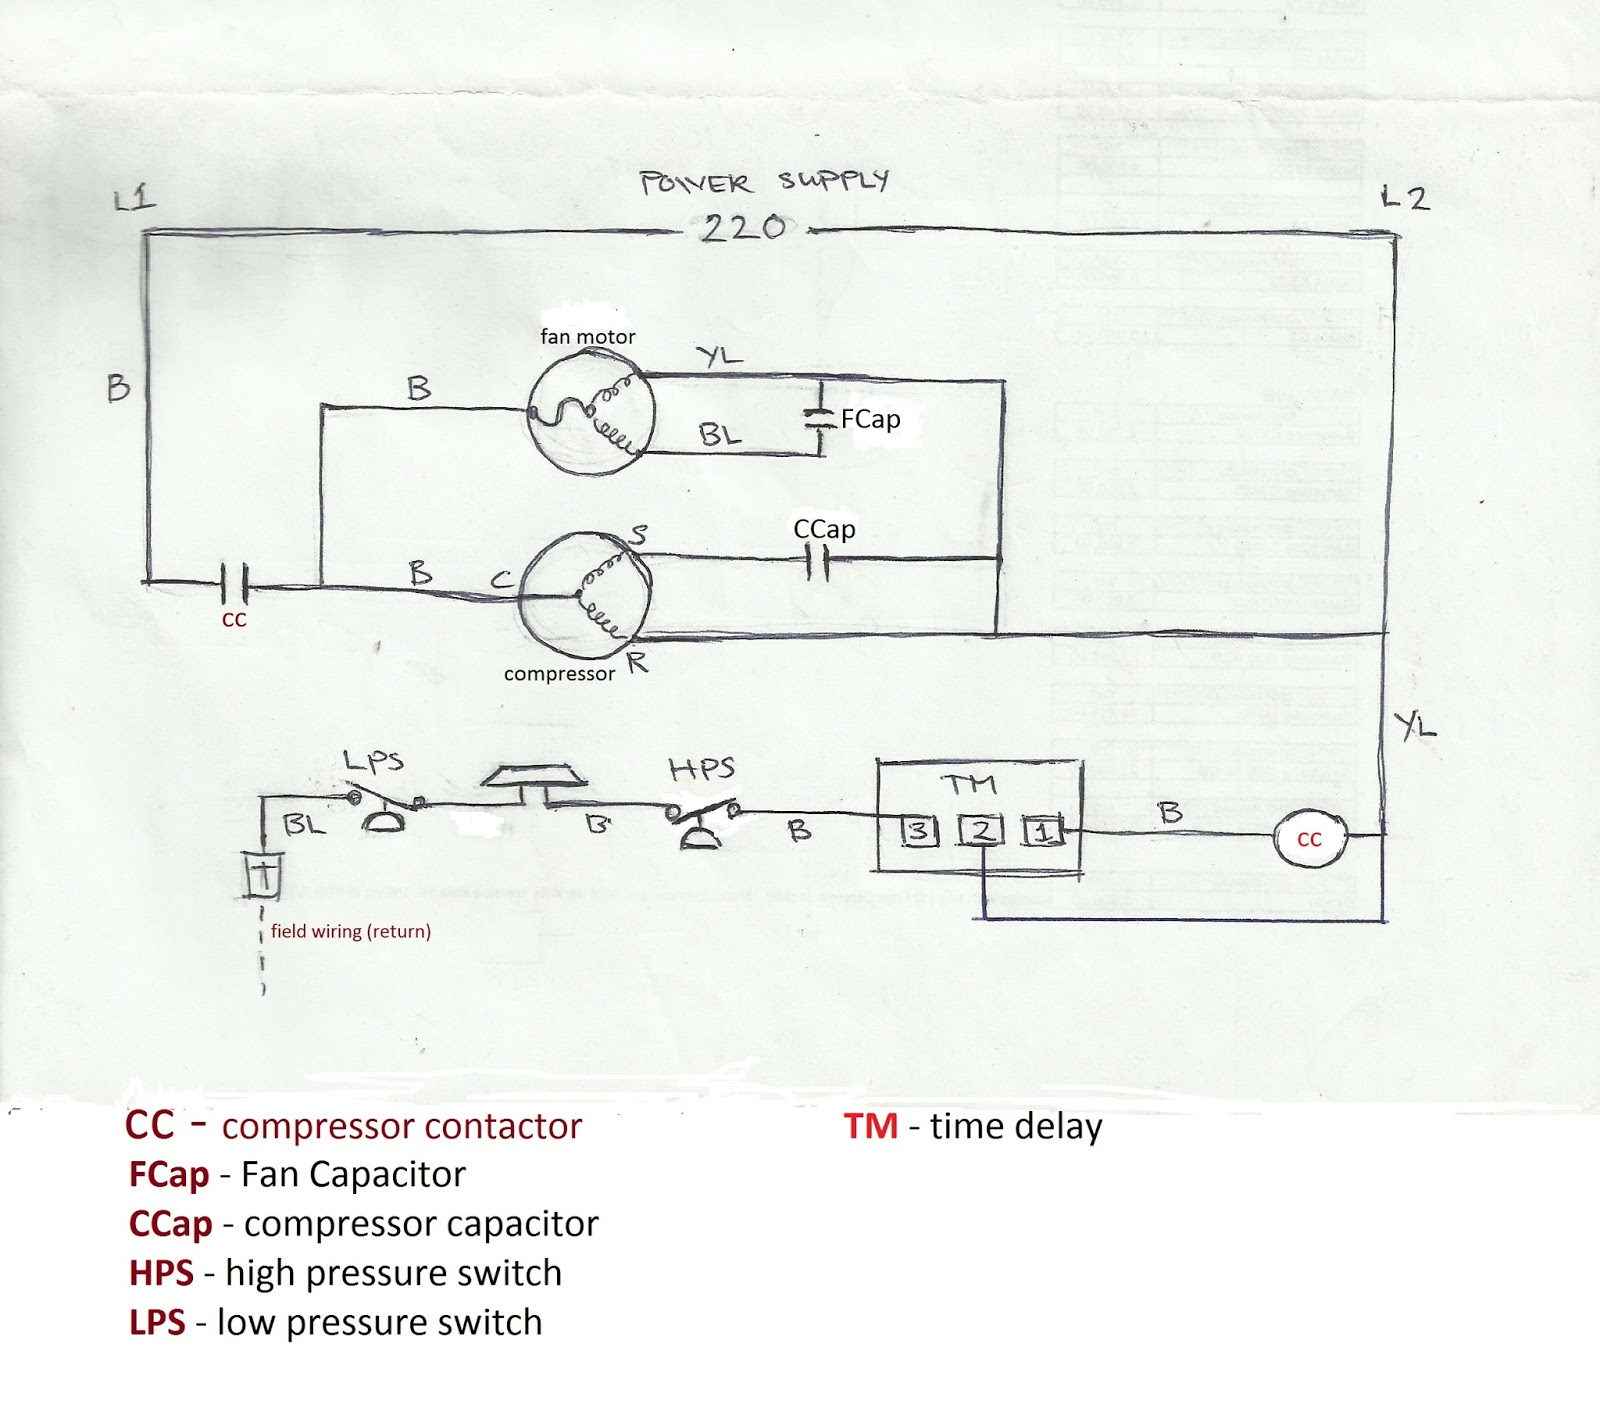 Carrier Ac Fan Motor Wiring Diagram Schematic 2019 Squirrel Cage Air Conditioning Get Free Image